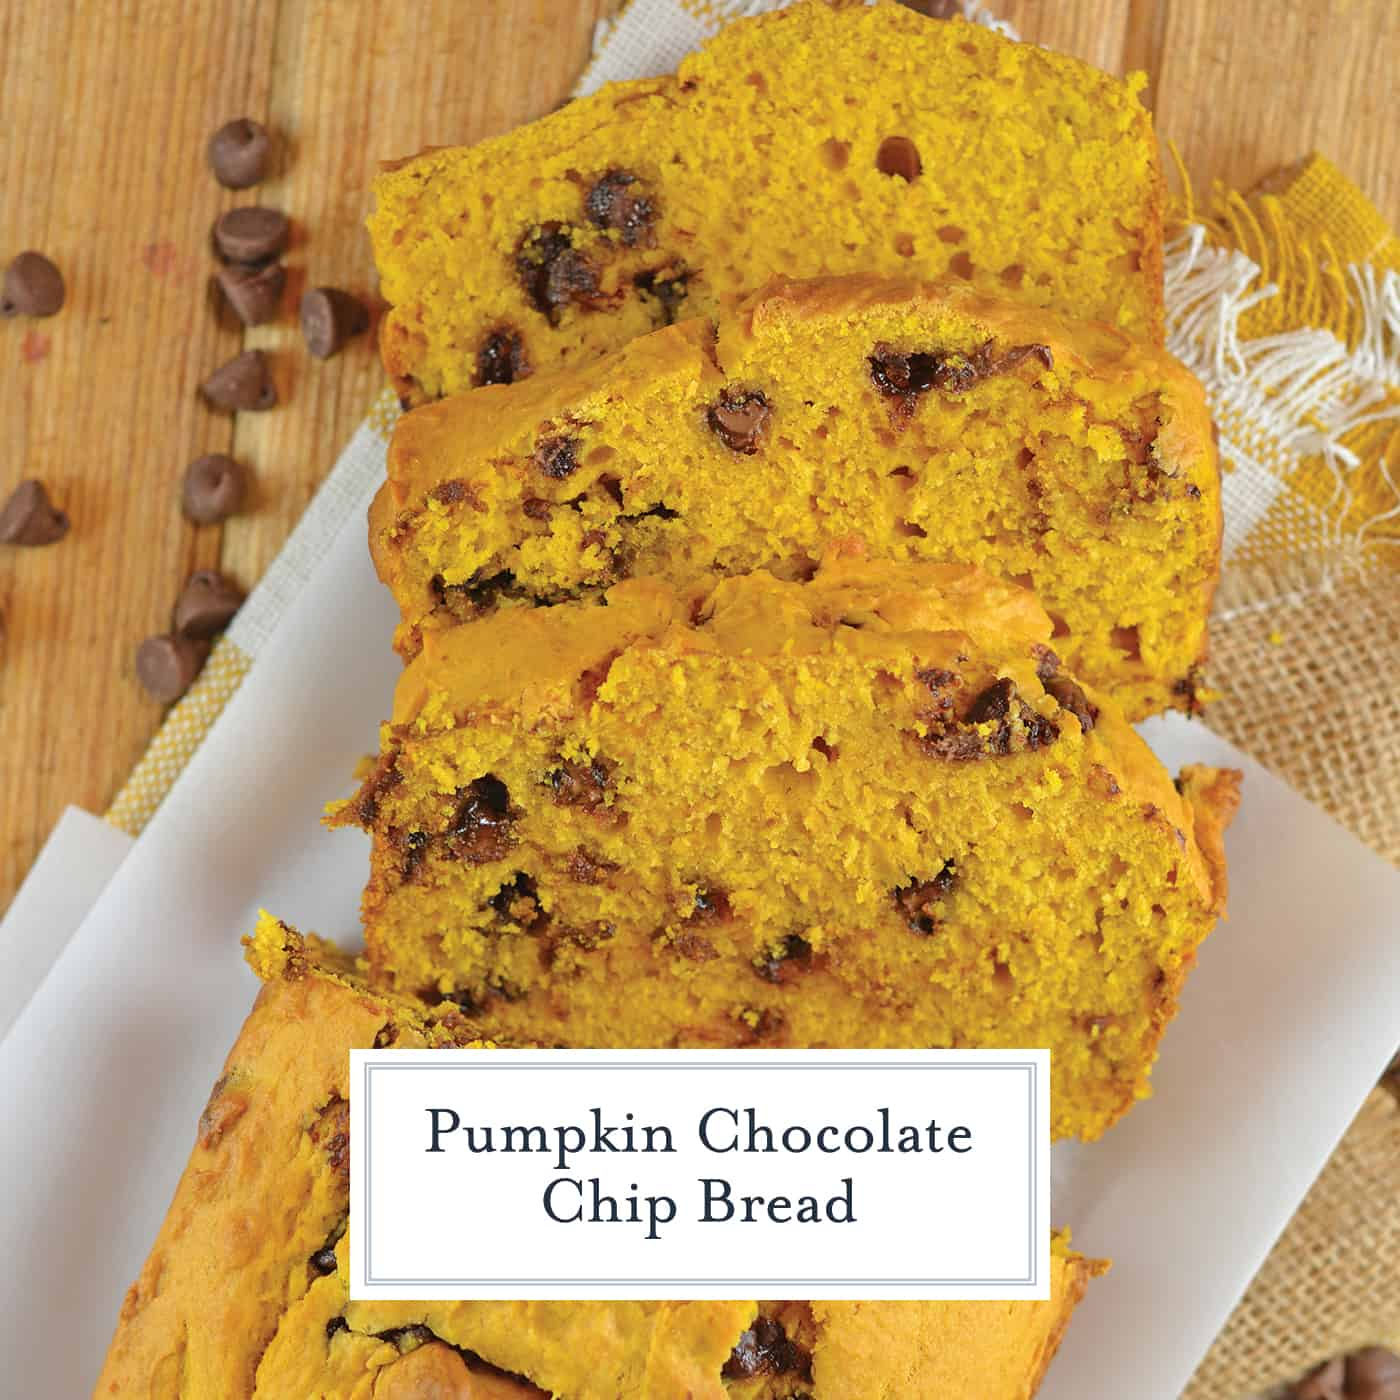 Chocolate Chip Pumpkin Bread is easy to make, soft and flavorful. A perfect loaf for breakfast or dessert on a holiday or any other day! #pumpkinchocolatechipbread #pumpkinbreadwithchocolatechips www.savoryexperiments.com